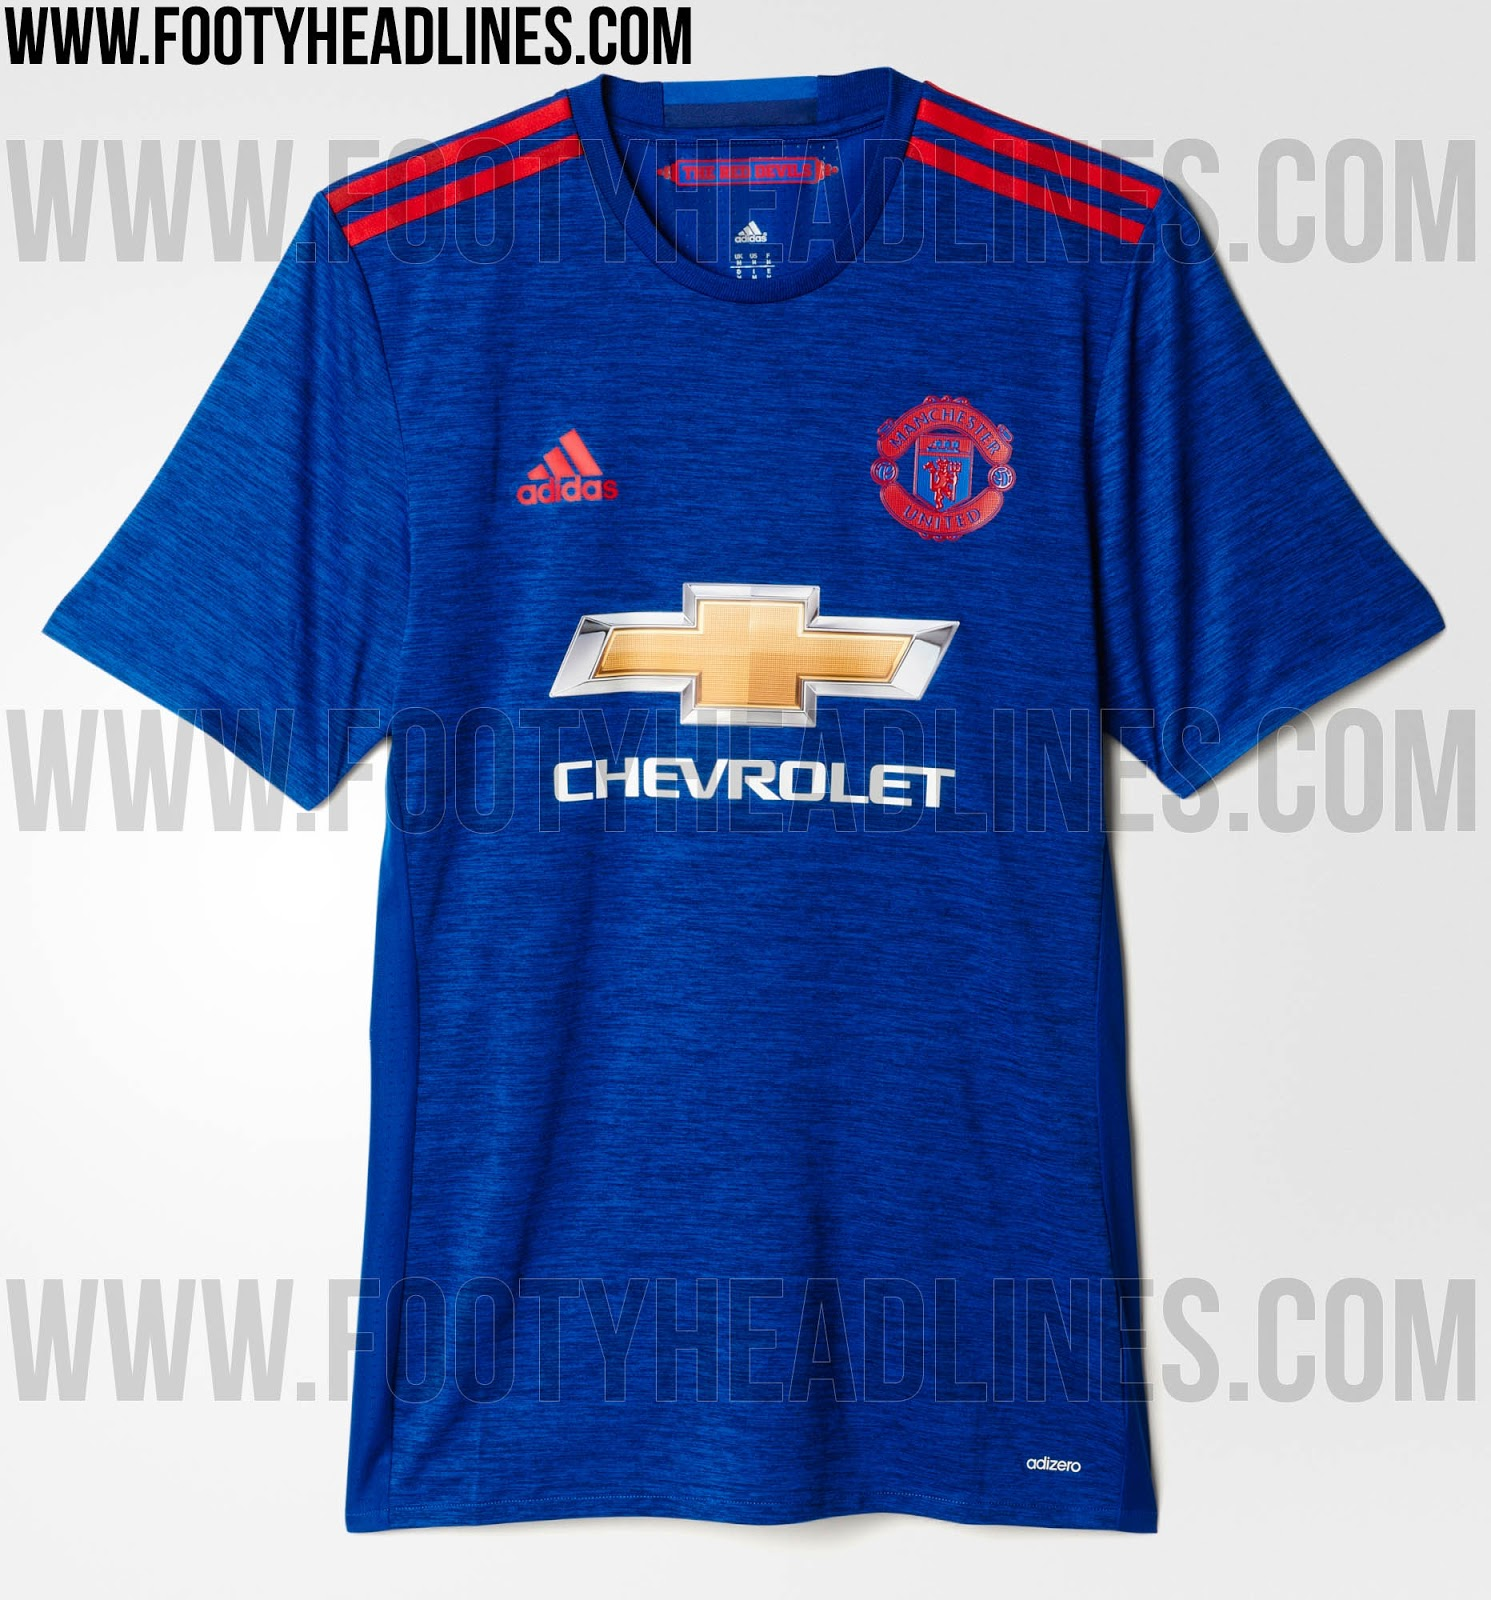 jersey man united away 2016